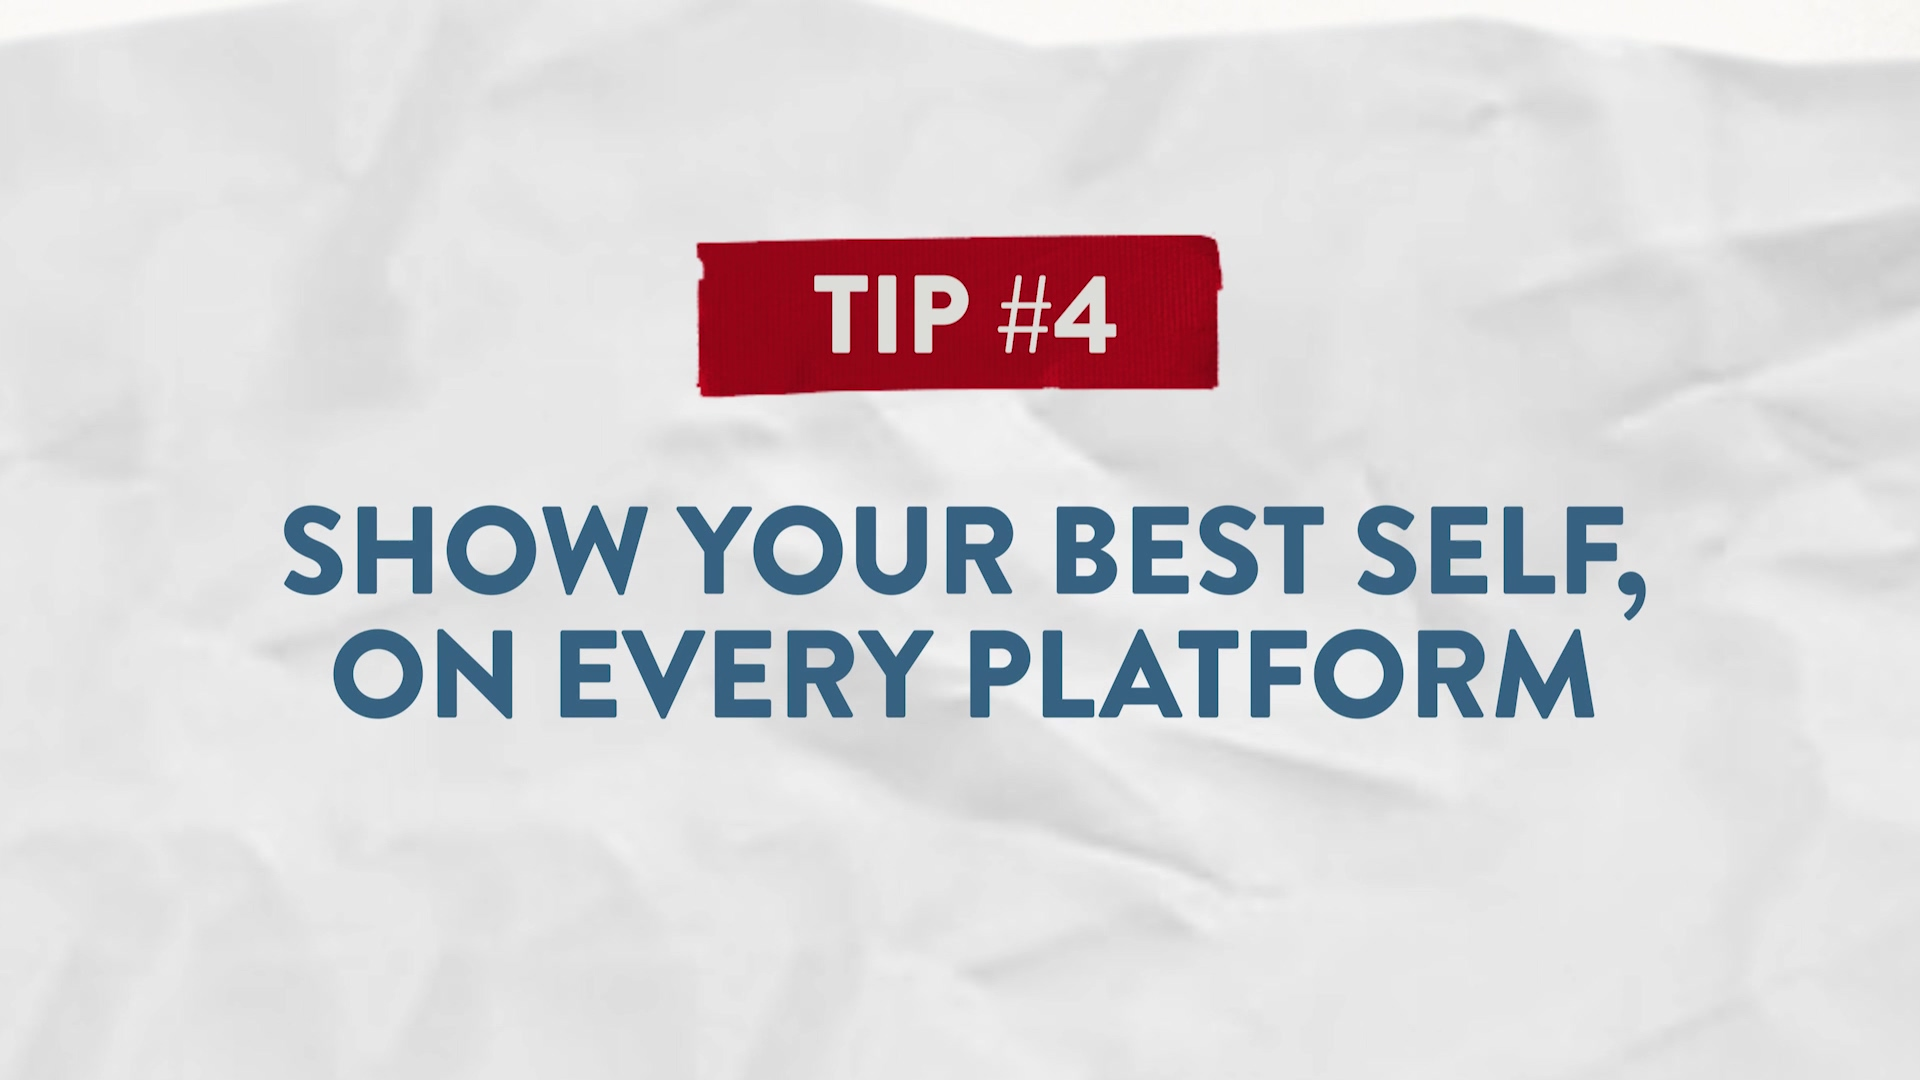 Tip #4 Show Your Best Self, On Every Platform